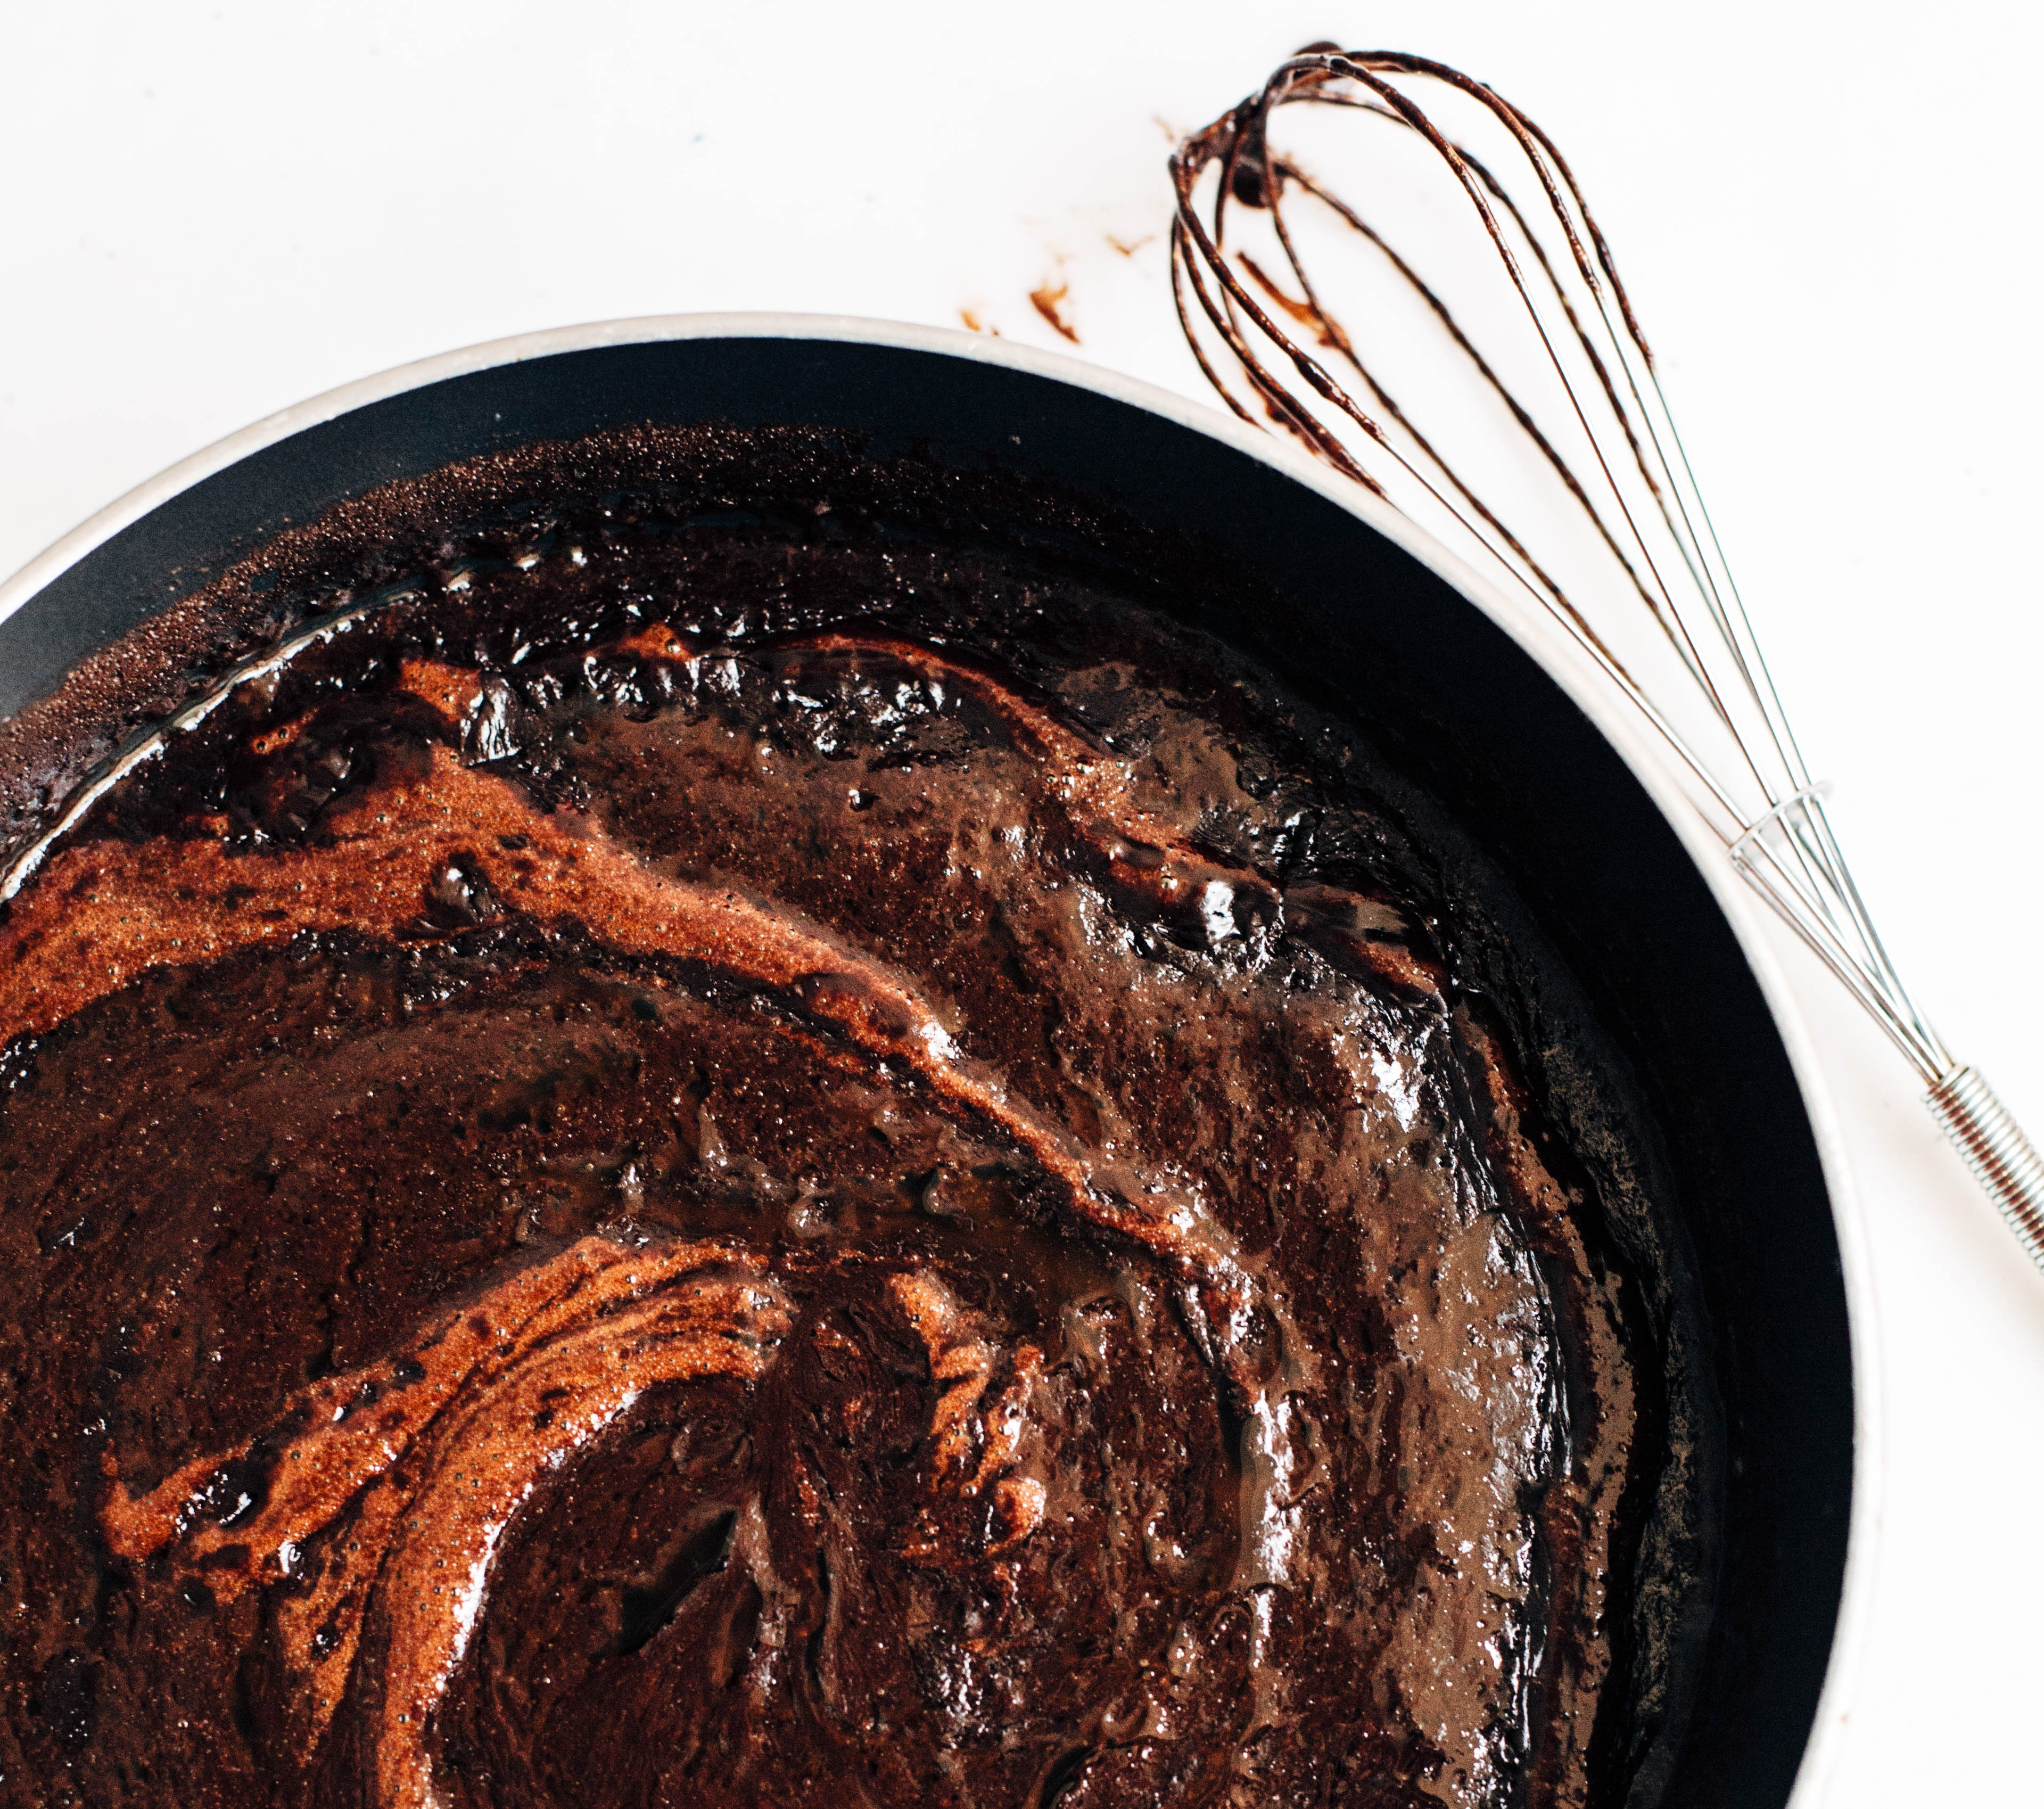 Chocoholic Recipes Guaranteed to Make Your Mouth Water